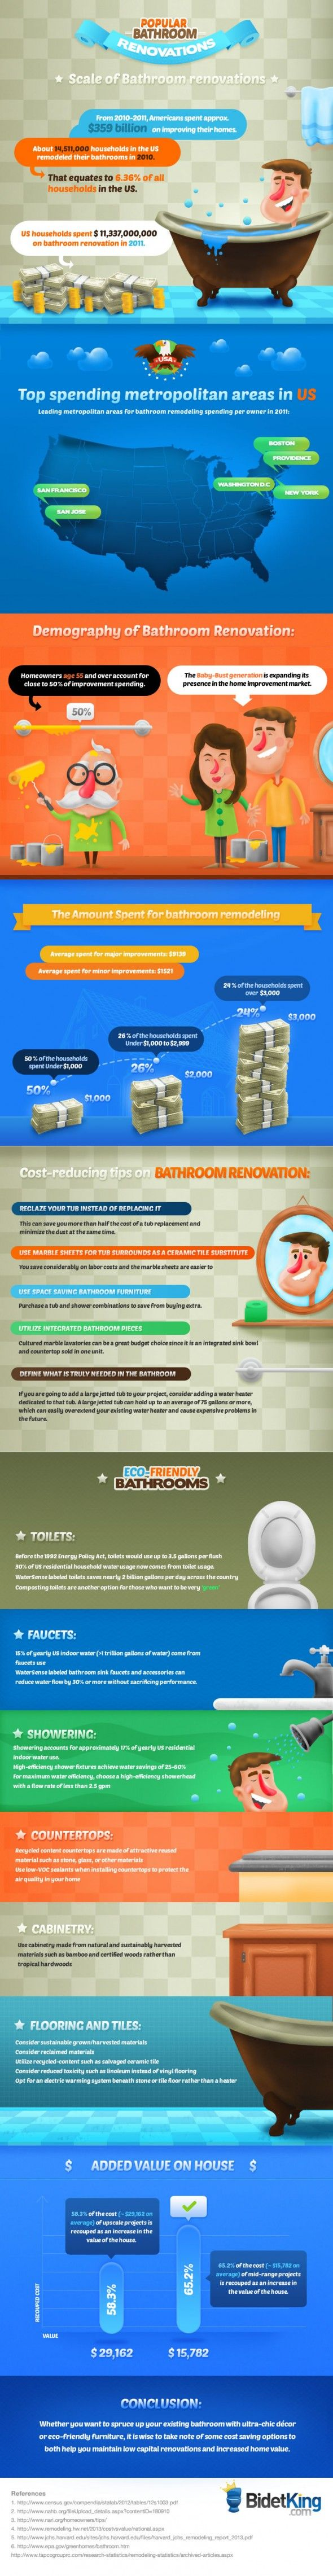 Bathroom Renovation List infographic: bathroom renovations | infographics home | pinterest